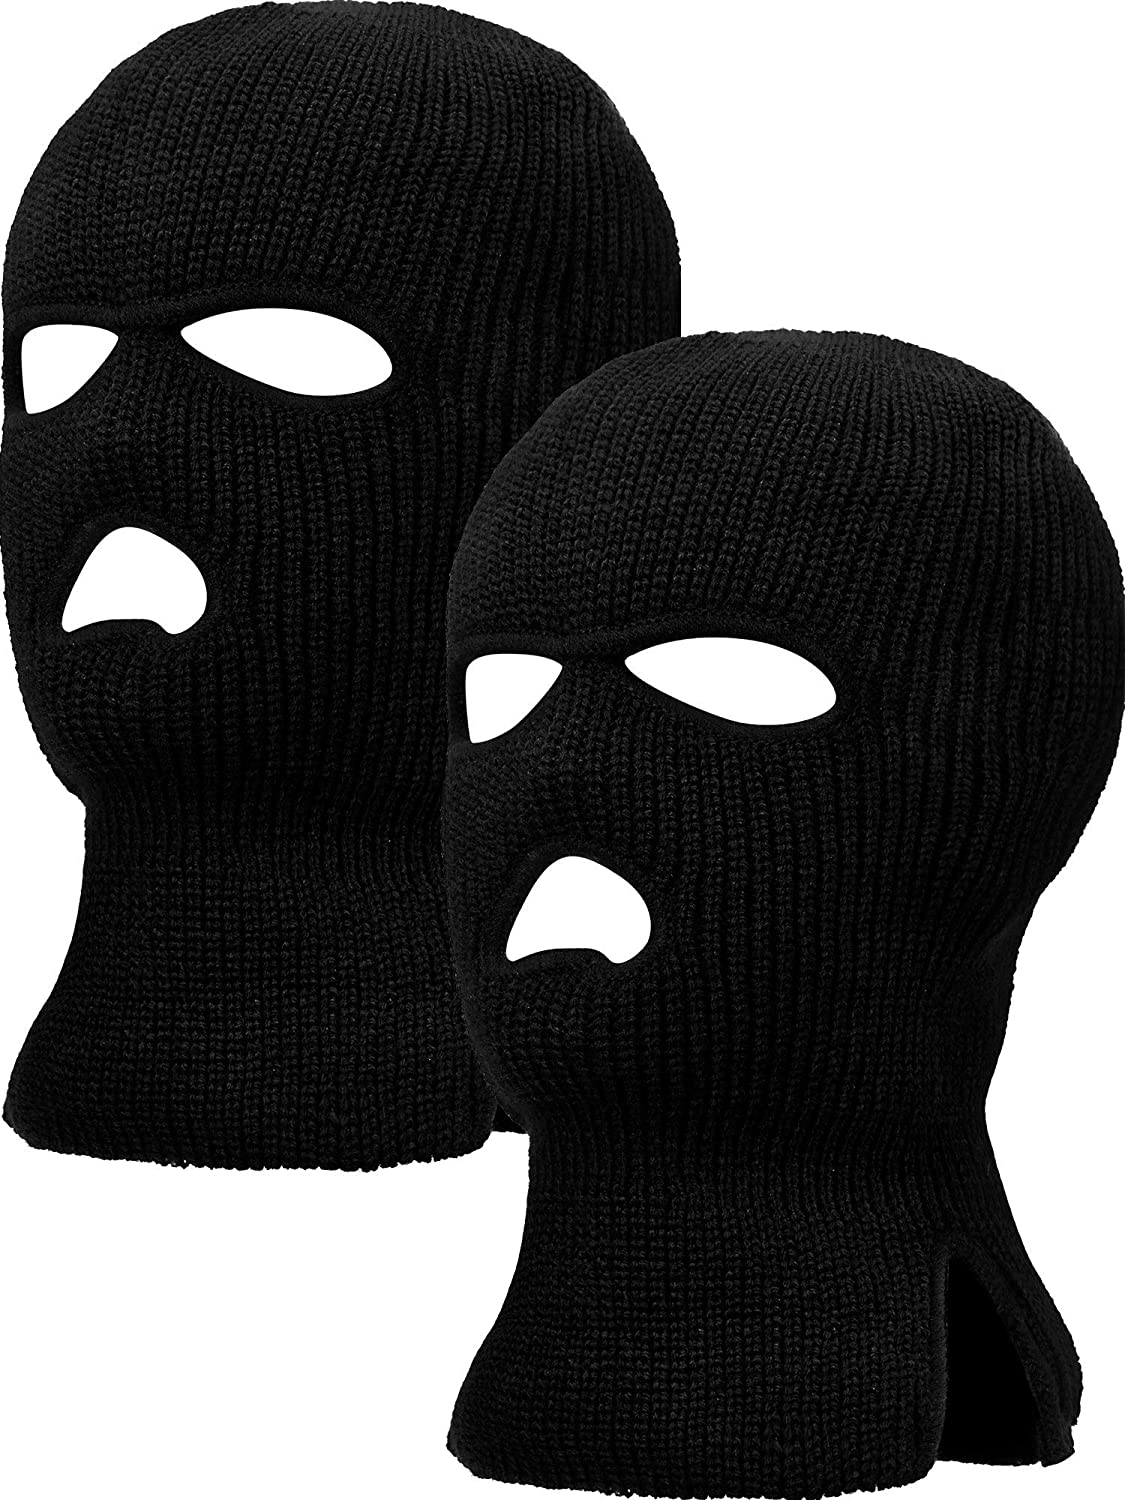 07716b66a47 Amazon.com  2 Pieces 3-Hole Ski Mask Knitted Face Cover Winter Balaclava Full  Face Mask for Winter Outdoor Sports (Black)  Clothing